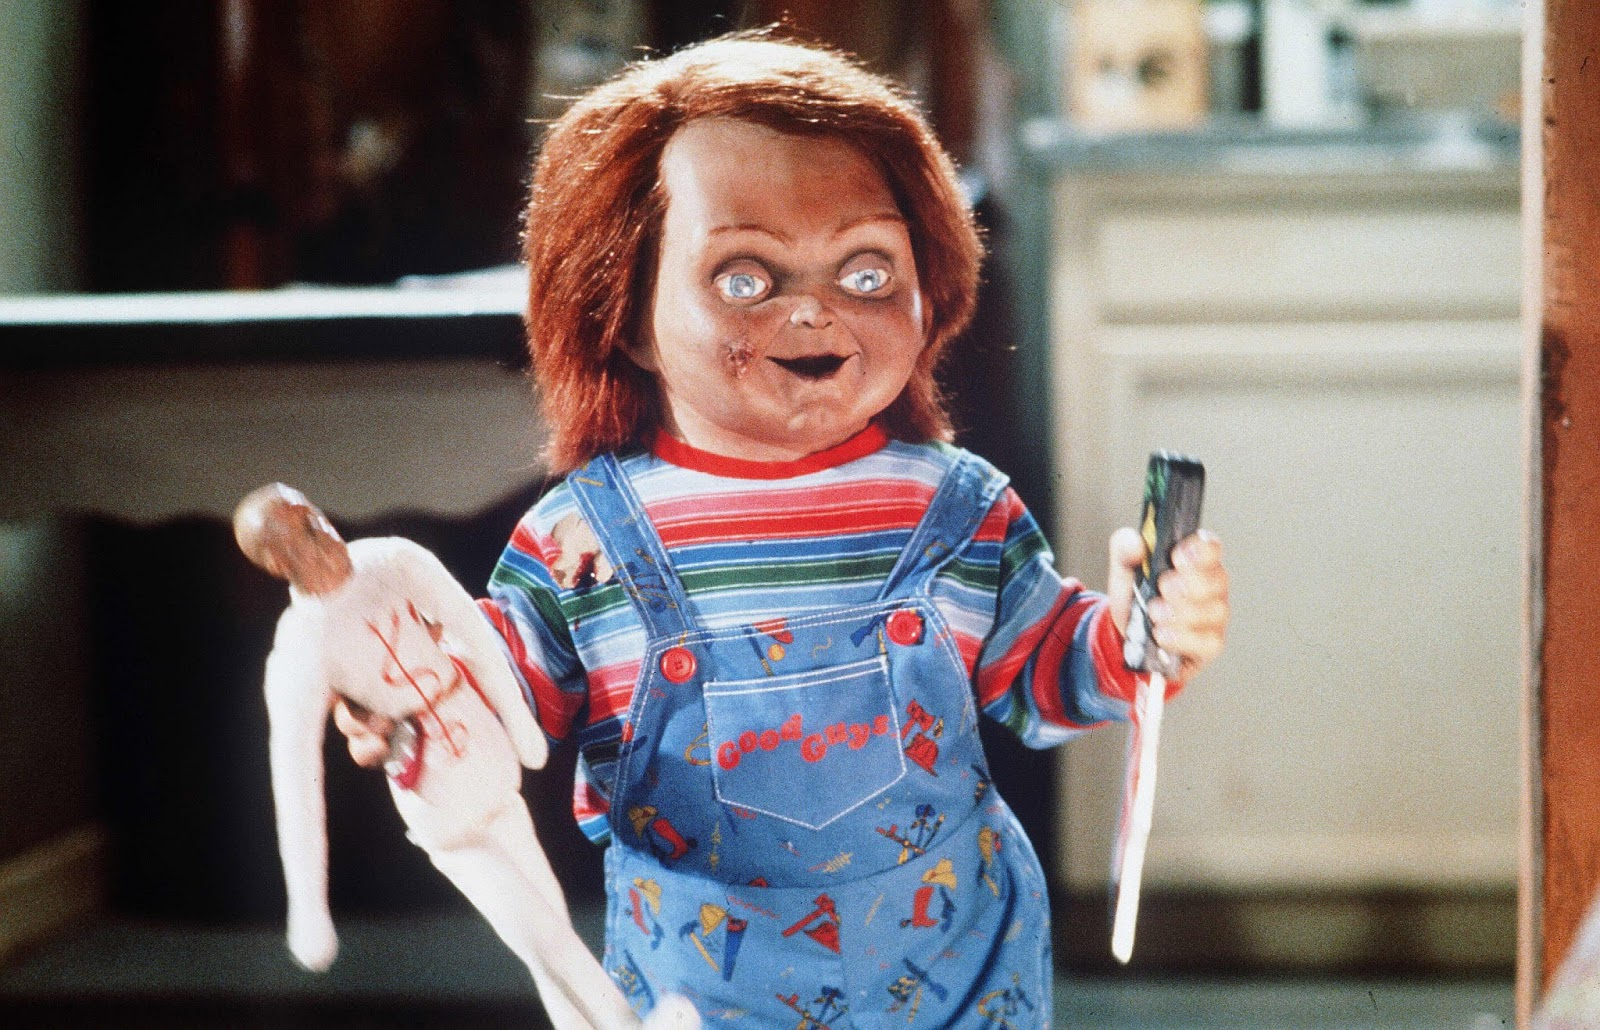 the horror film childs play earned 96 million at the box office while ernest saves christmas brought in 7 million - Ernest Saves Christmas